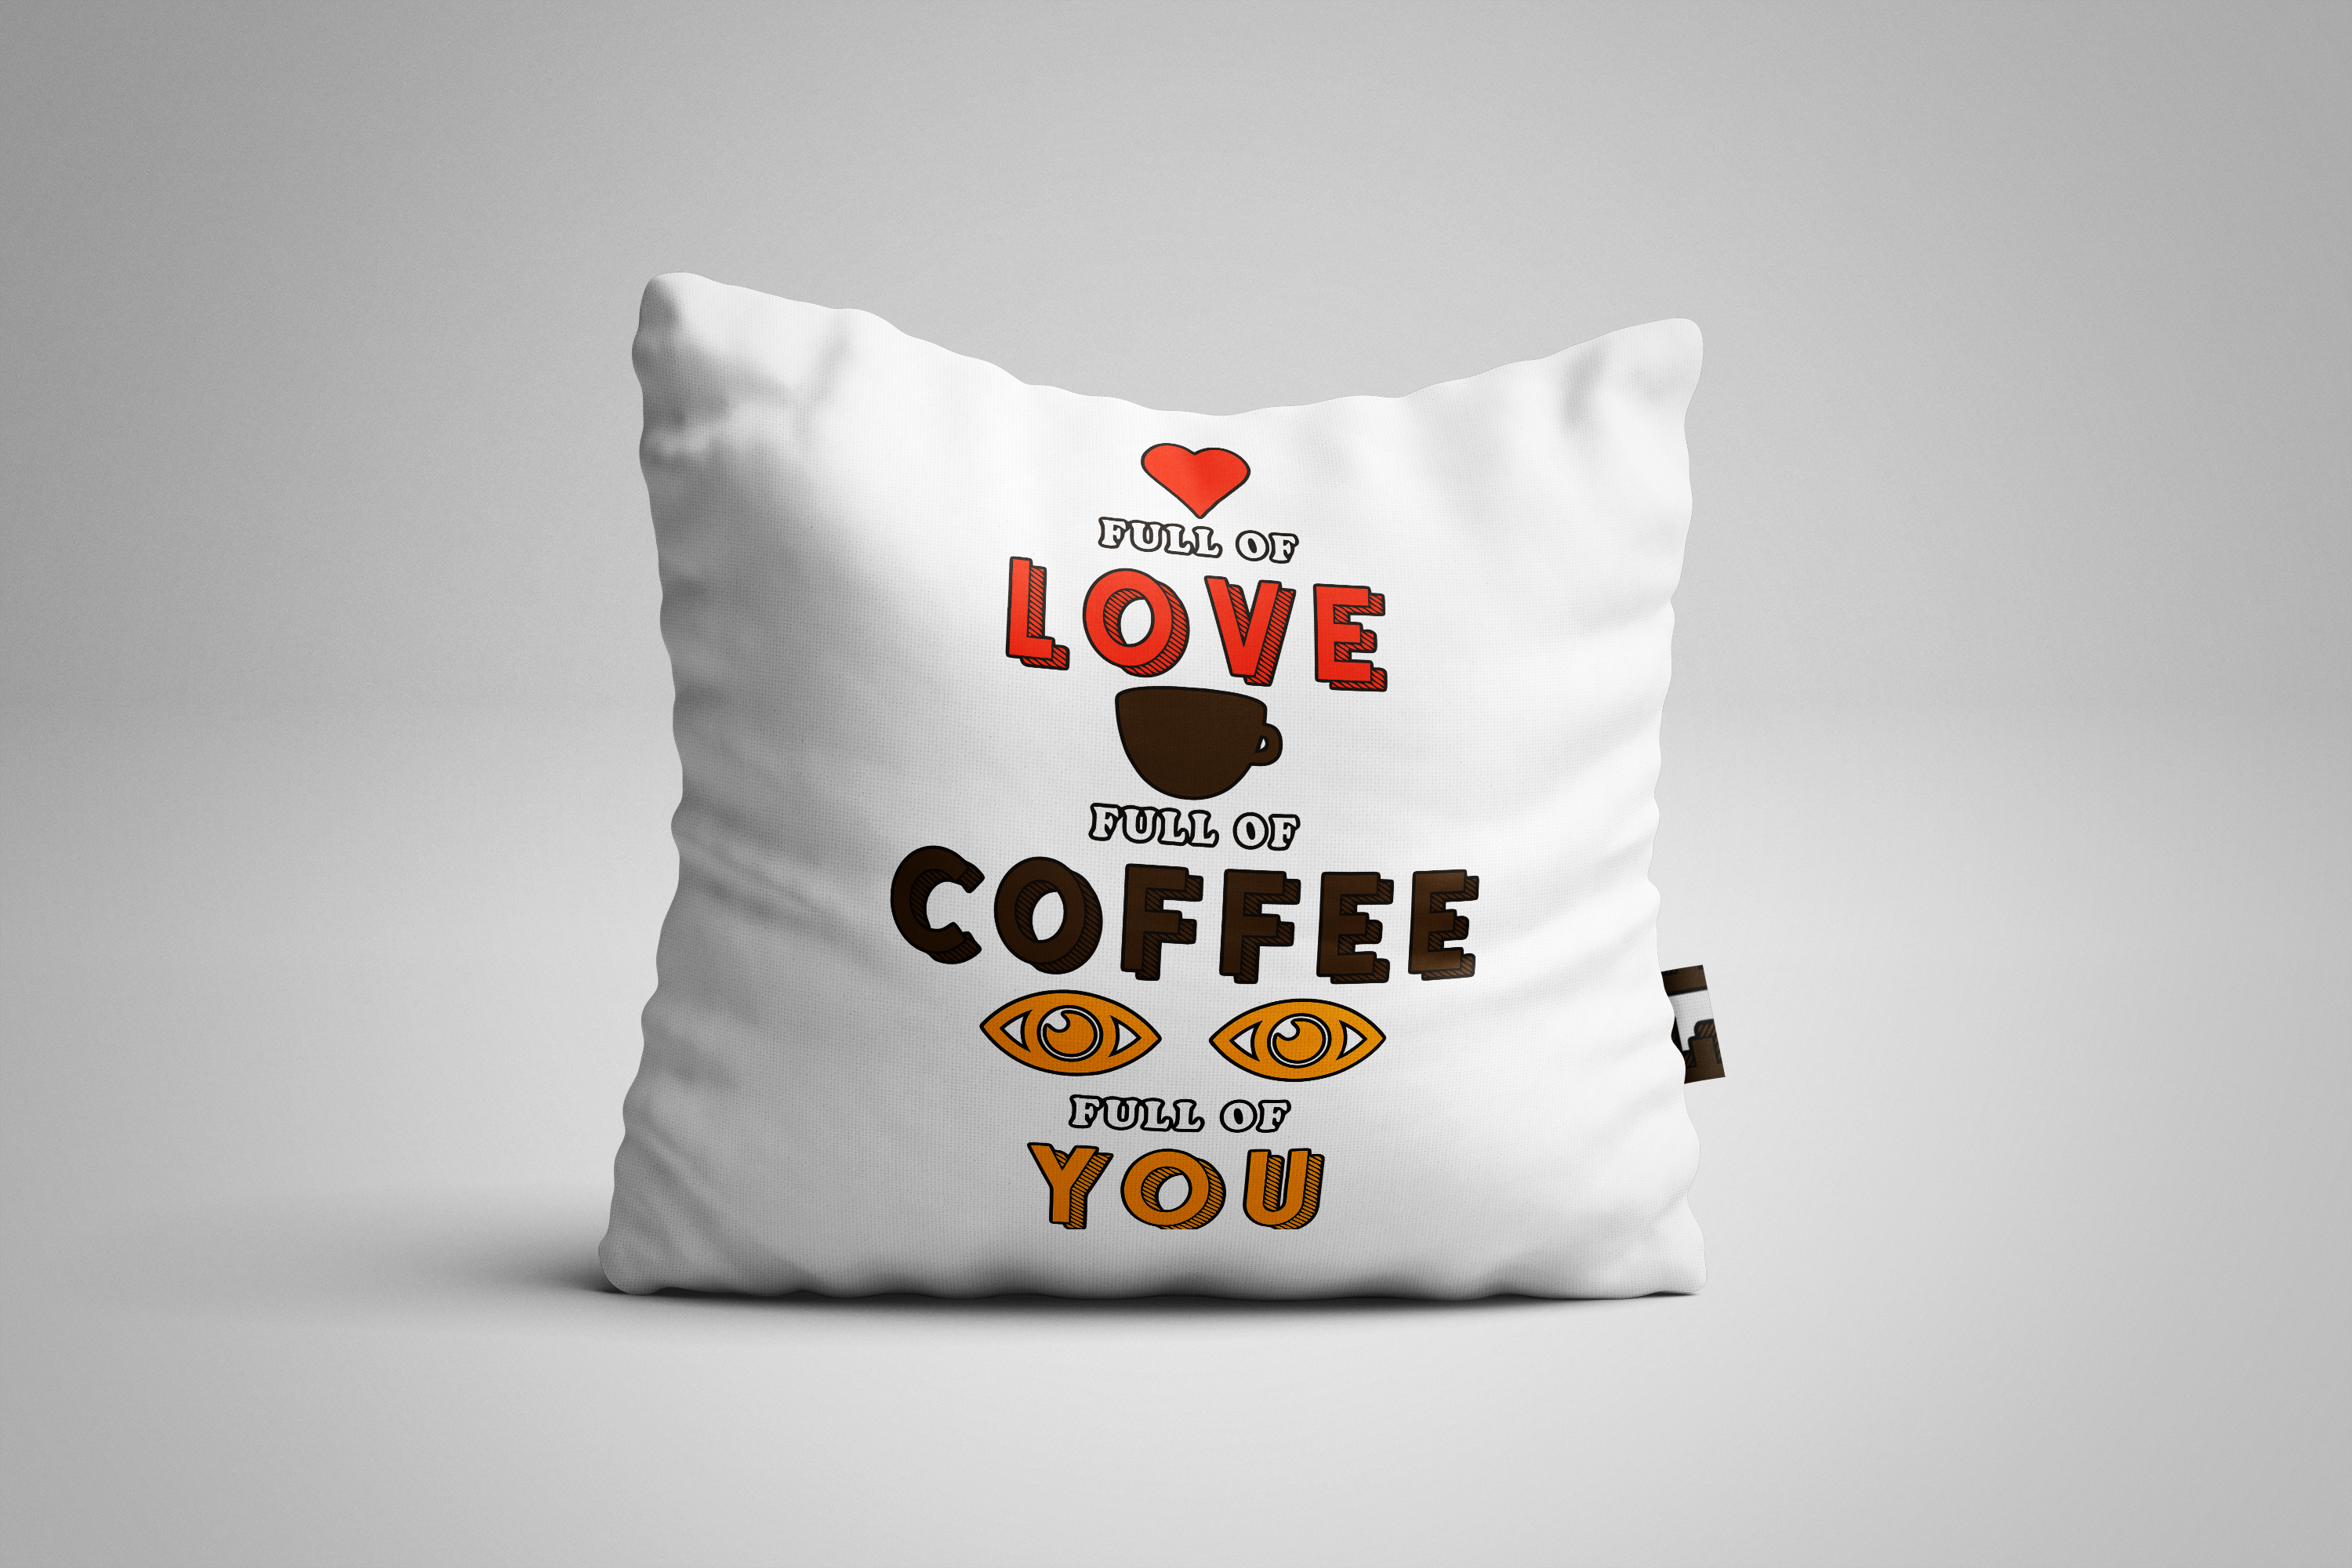 Love Coffee You example image 5